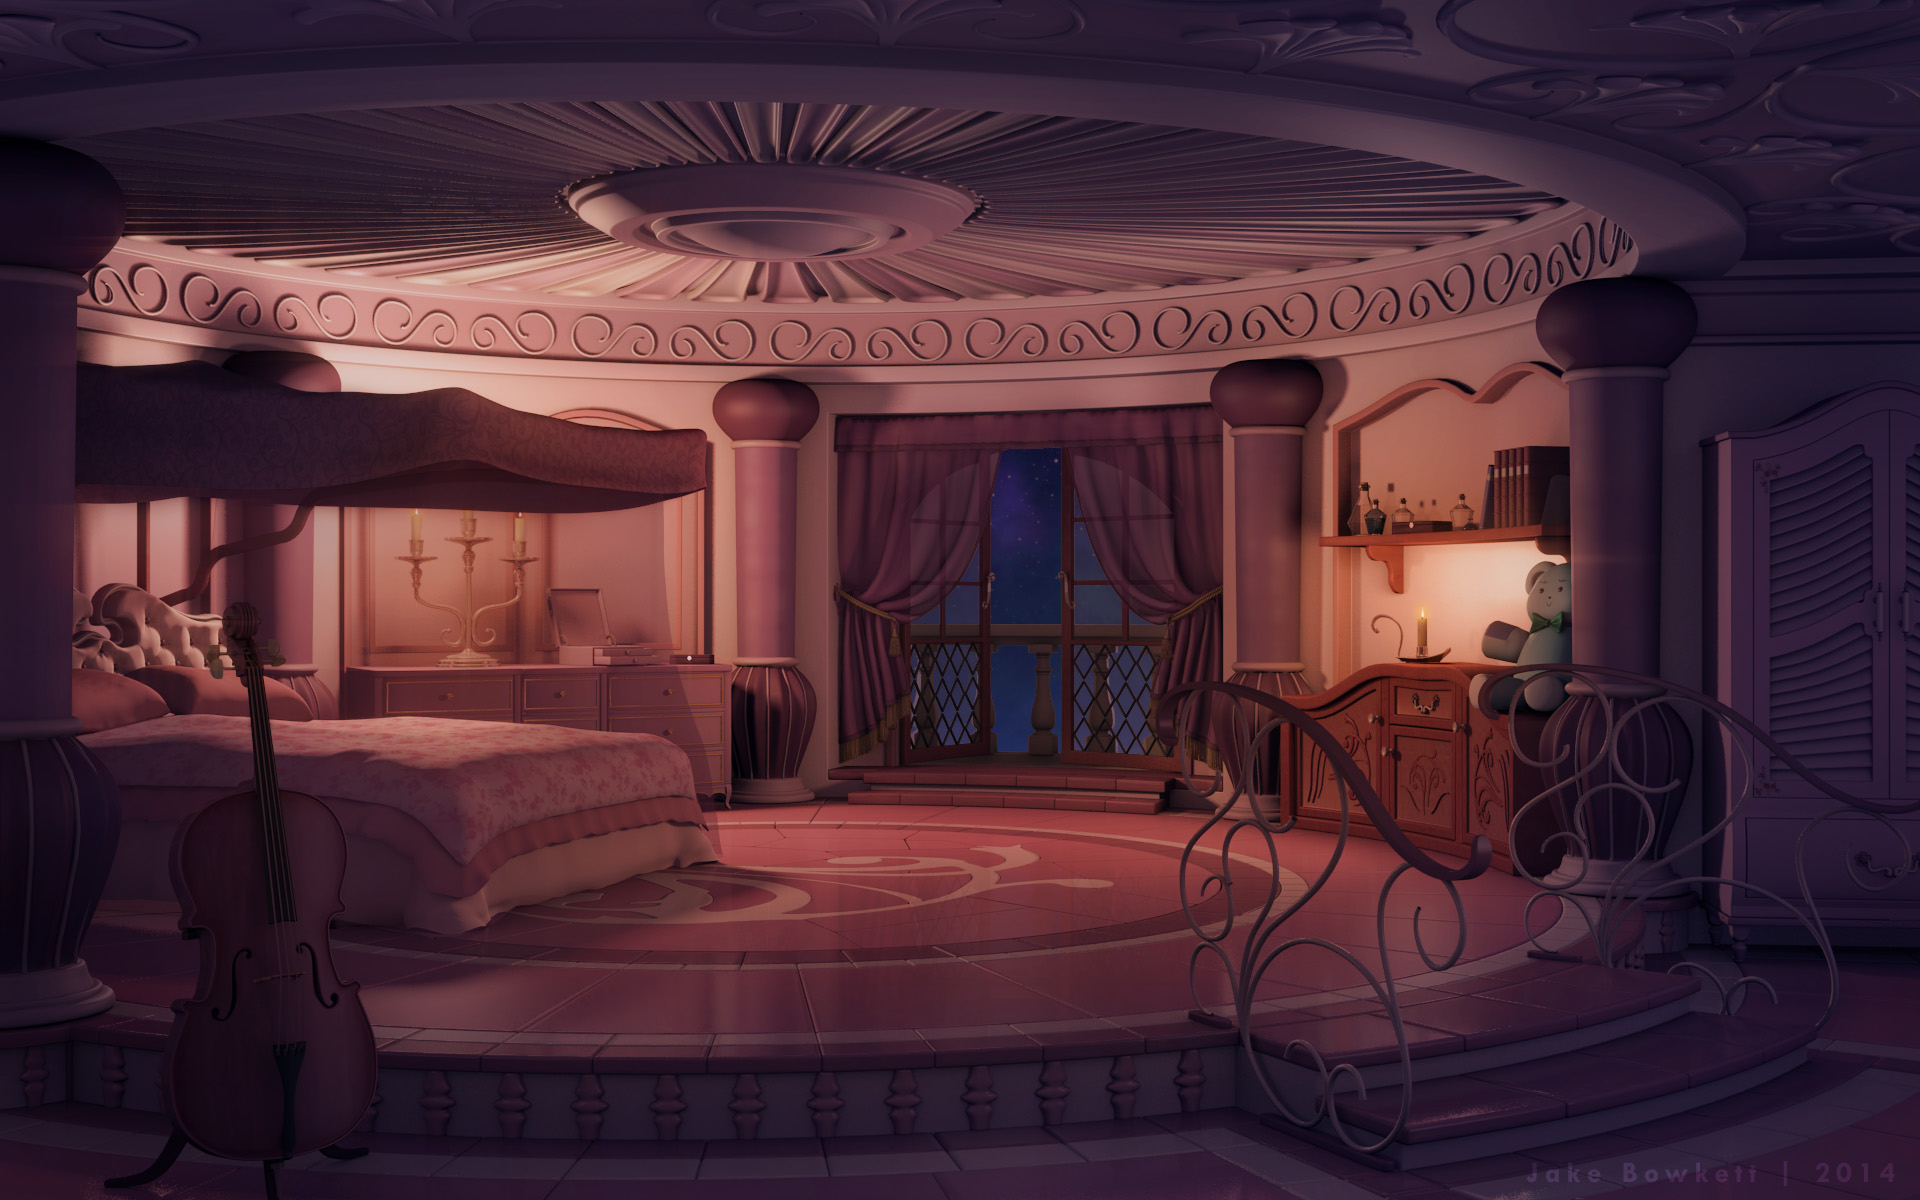 city lights wallpaper for bedroom princess s room by jakebowkett on deviantart 18467